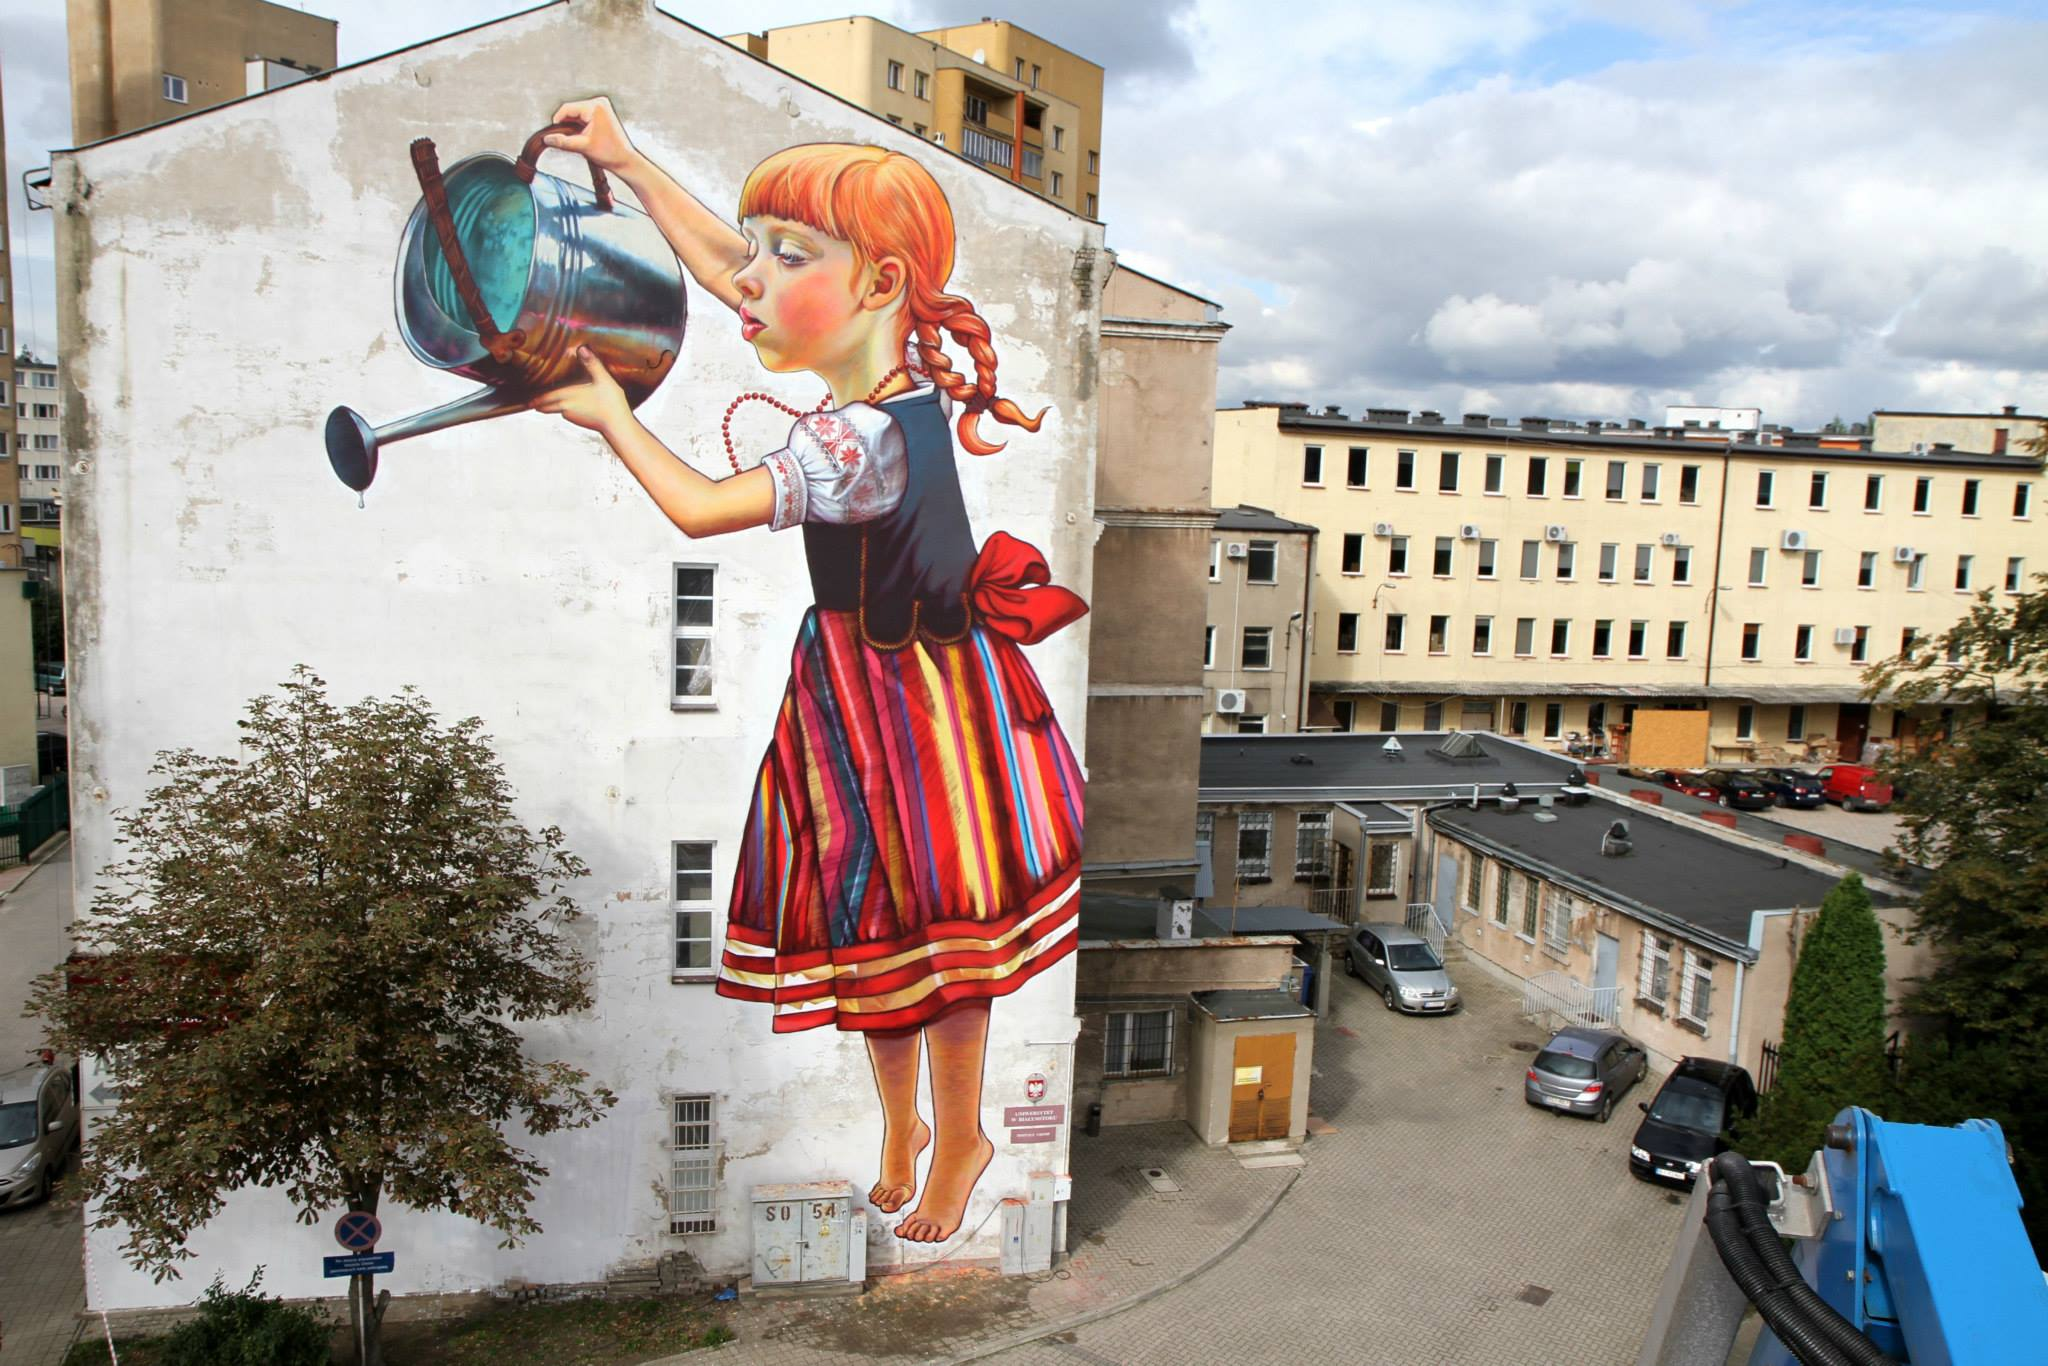 Mural by Natalii Rak at Folk on the Street in Białymstoku, Poland 4